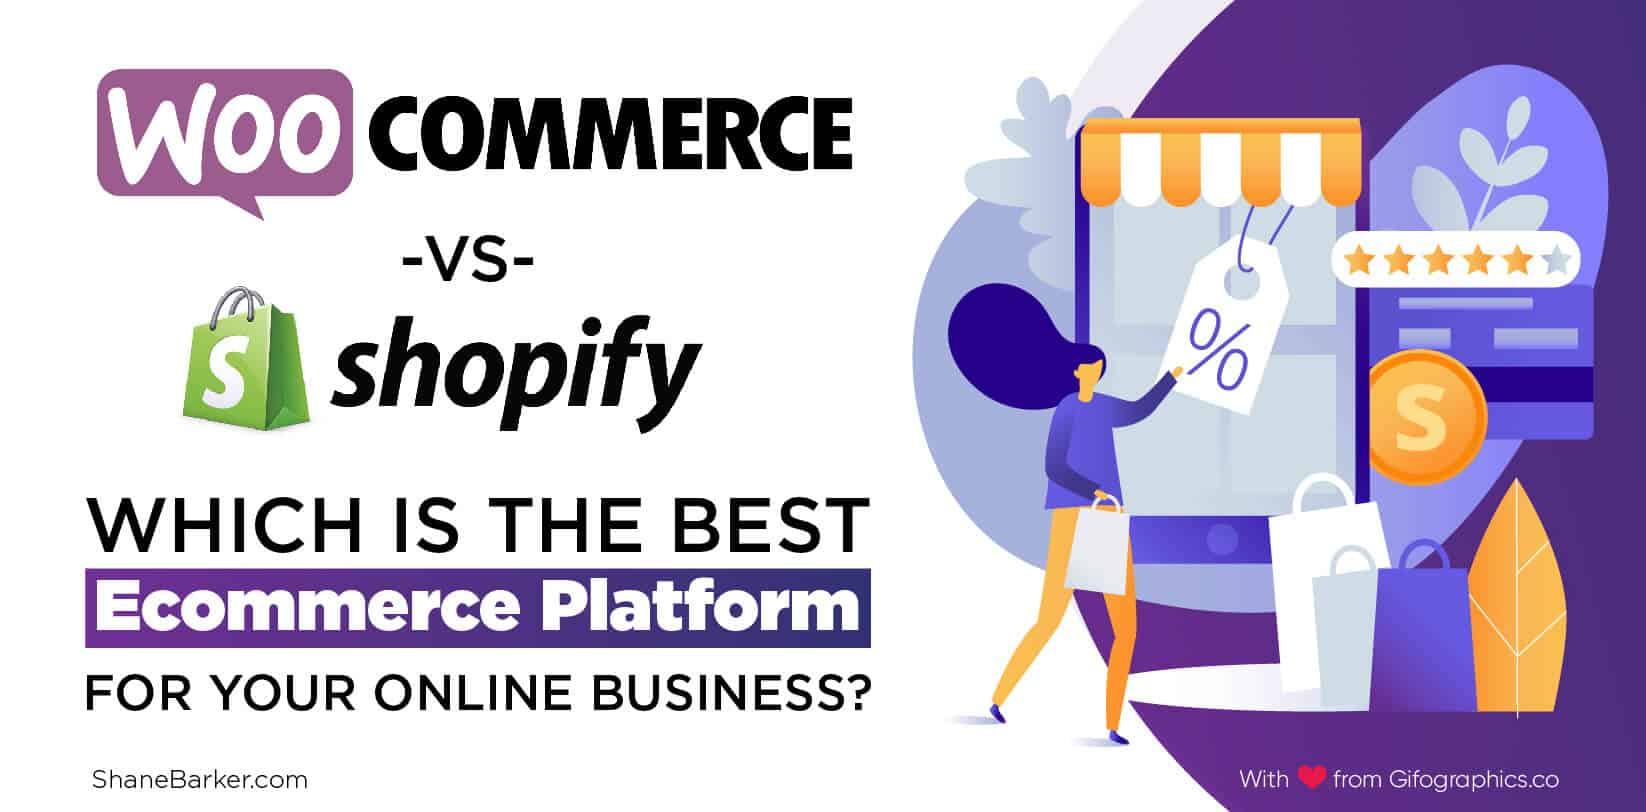 WooCommerce vs Shopify Which is The Best Ecommerce Platform for Your Online Business